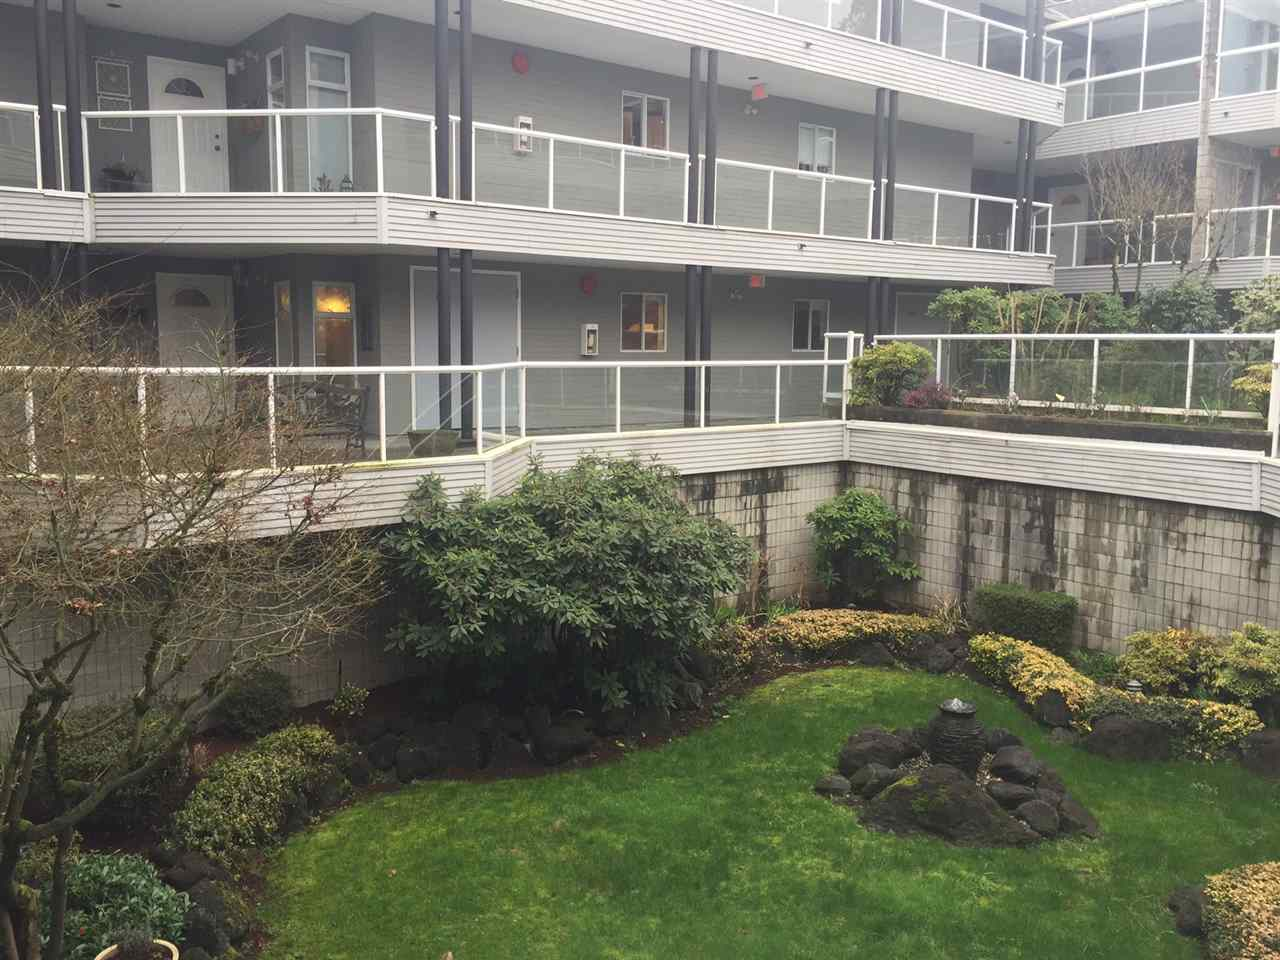 Main Photo: 204 2733 ATLIN Place in Coquitlam: Coquitlam East Condo for sale : MLS® # R2046230